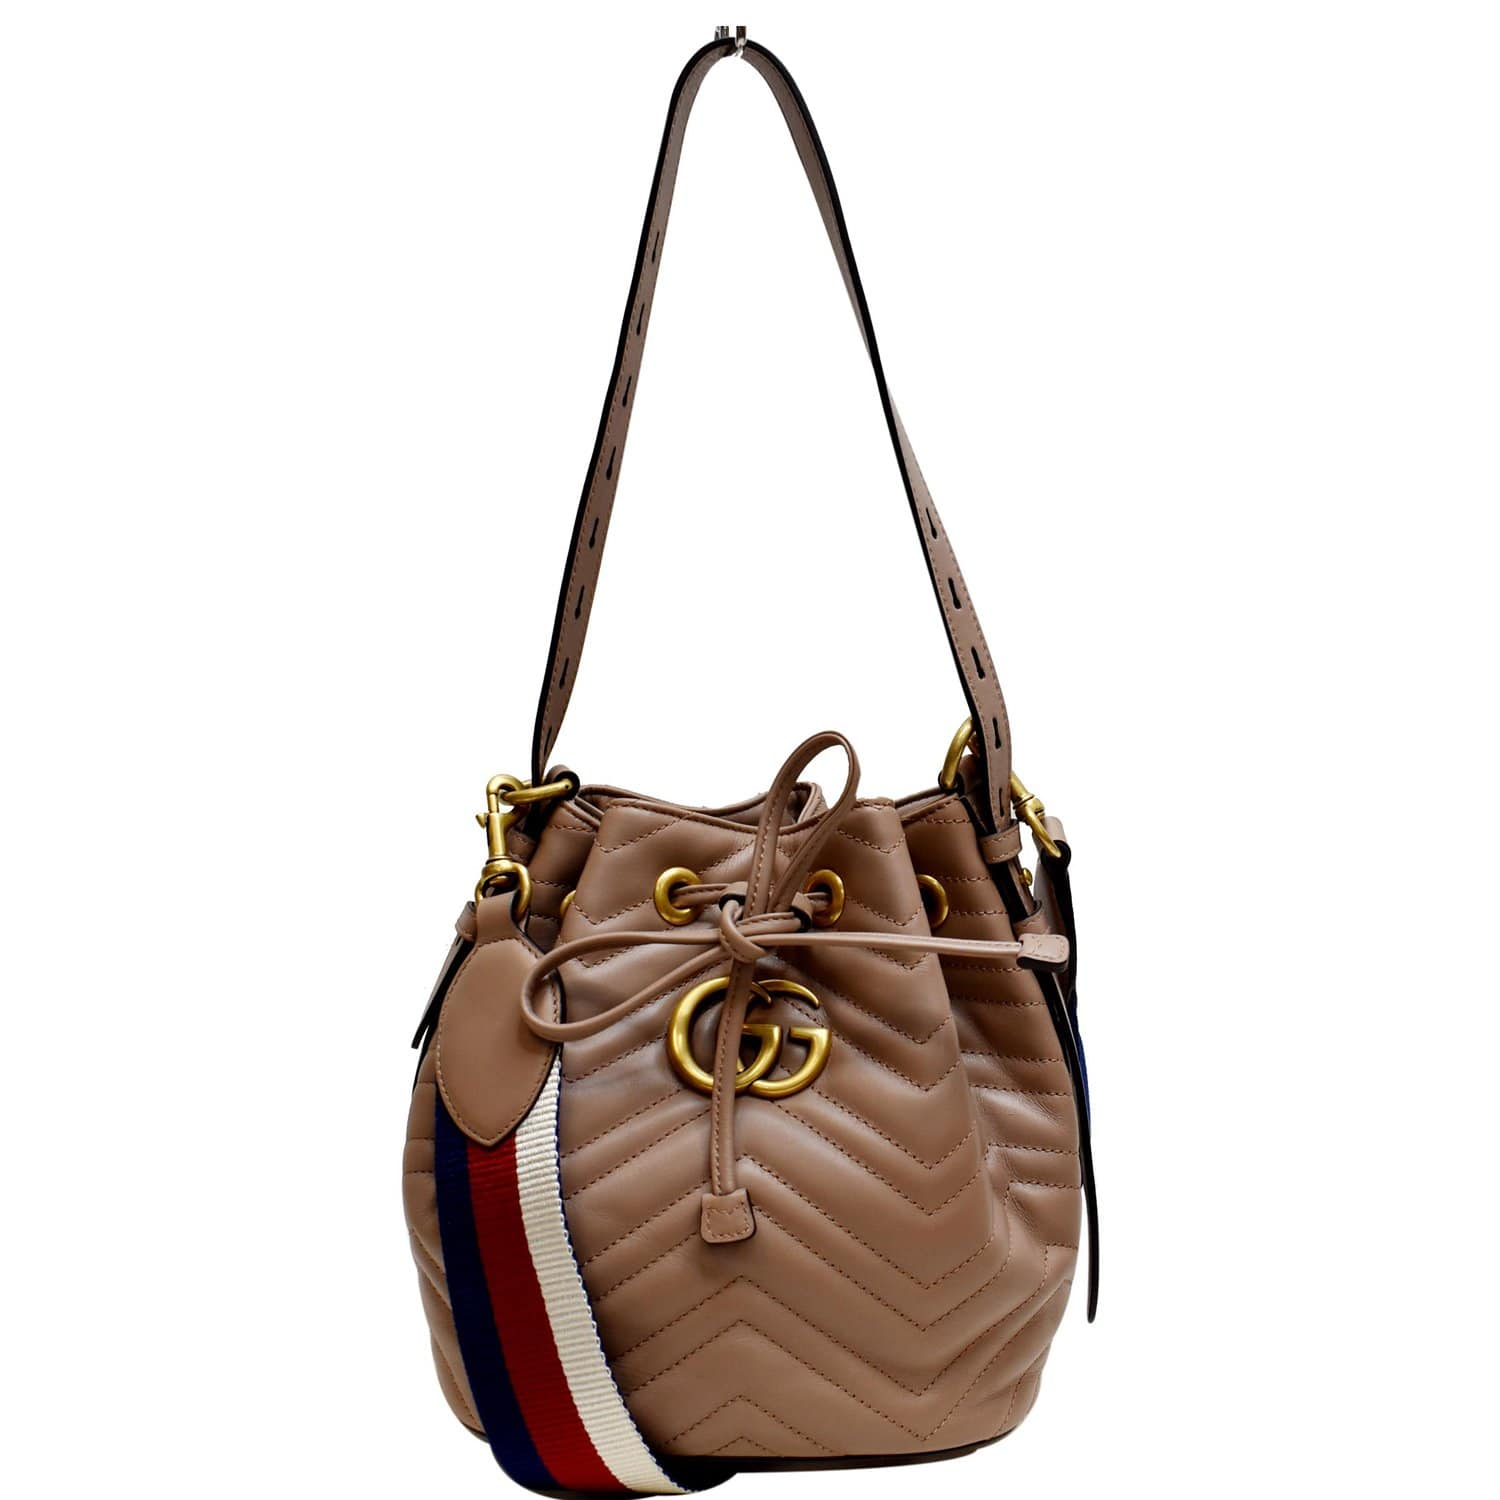 GUCCI Matelasse GG Marmont Quilted Bucket Shoulder Bag Nude 476674